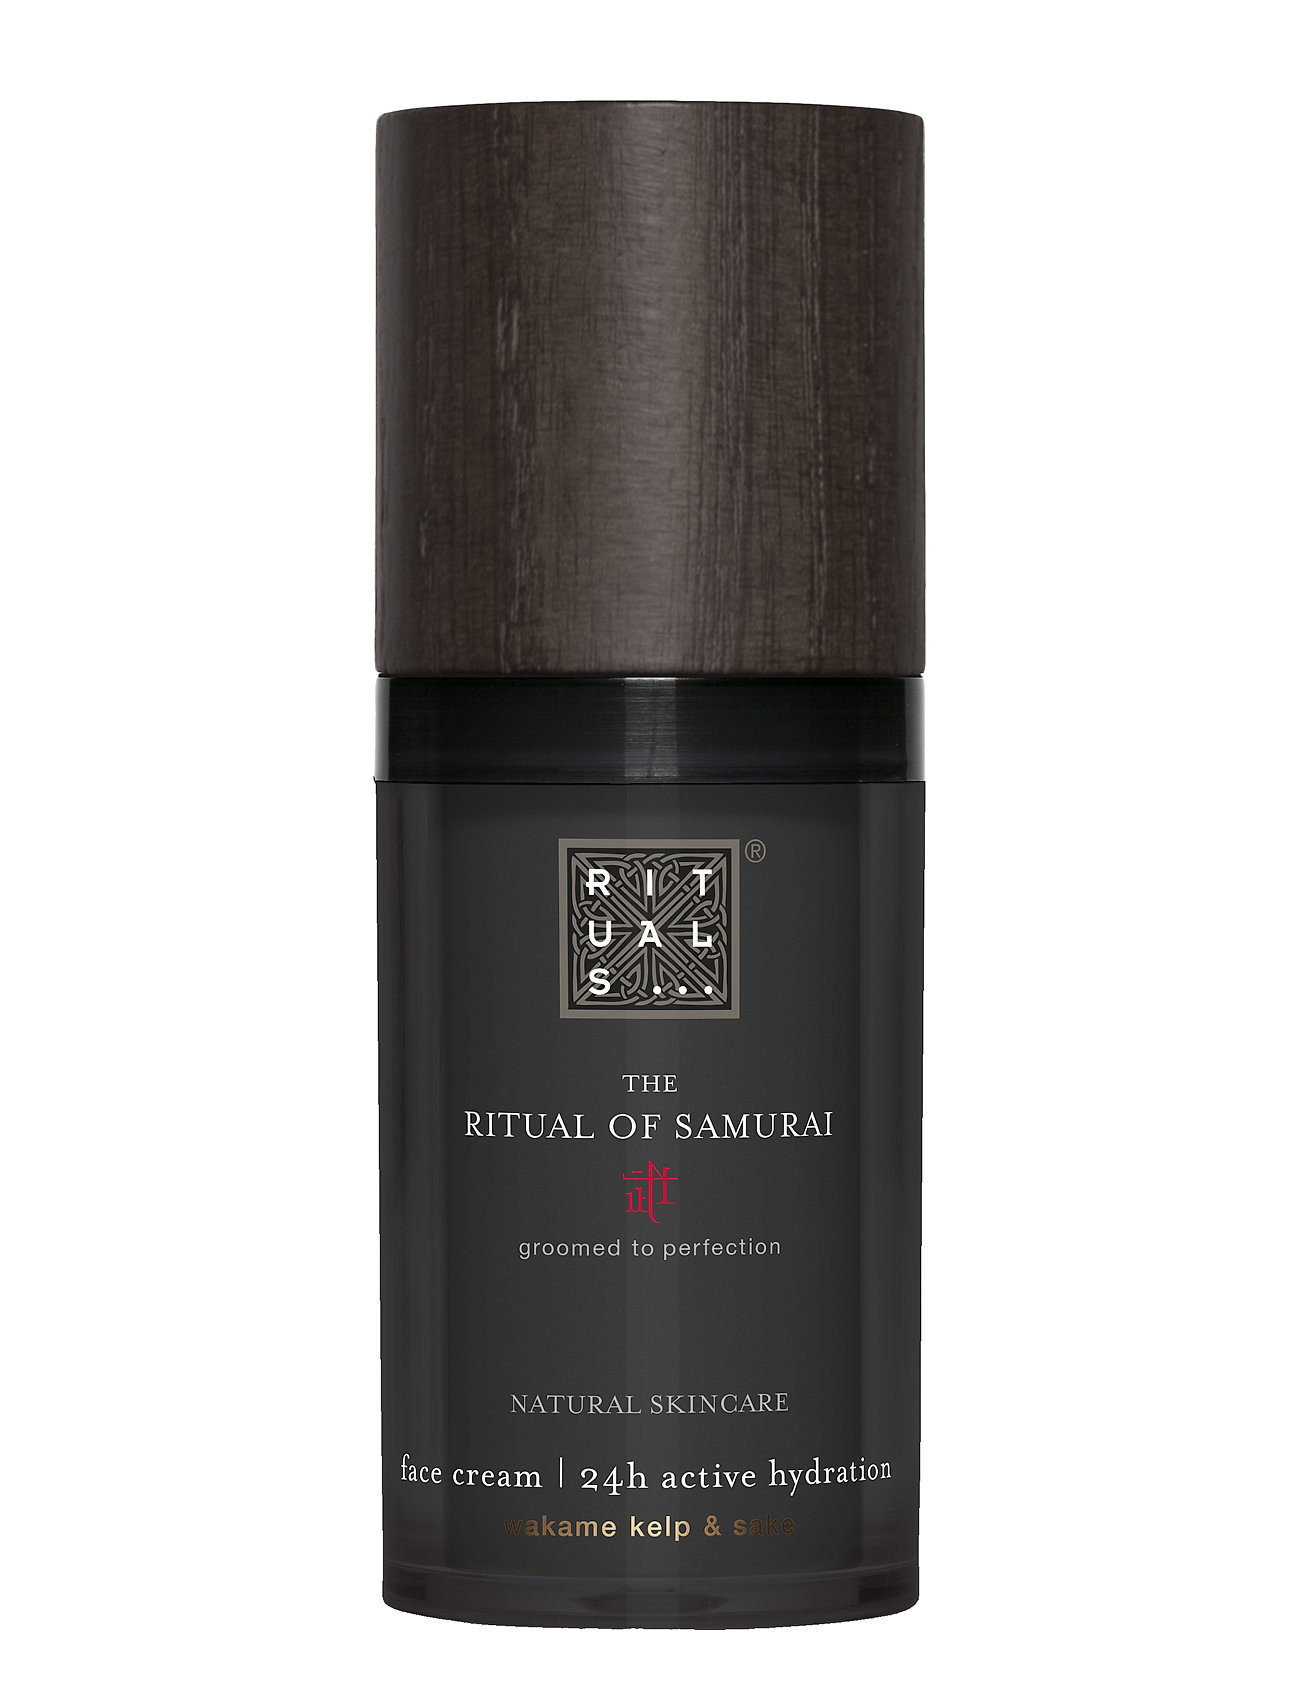 Image of The Ritual Of Samurai Face 24h Active Hydration Face Cream Fugtighedscreme Ansigtscreme Hudpleje Nude Rituals (3220987153)